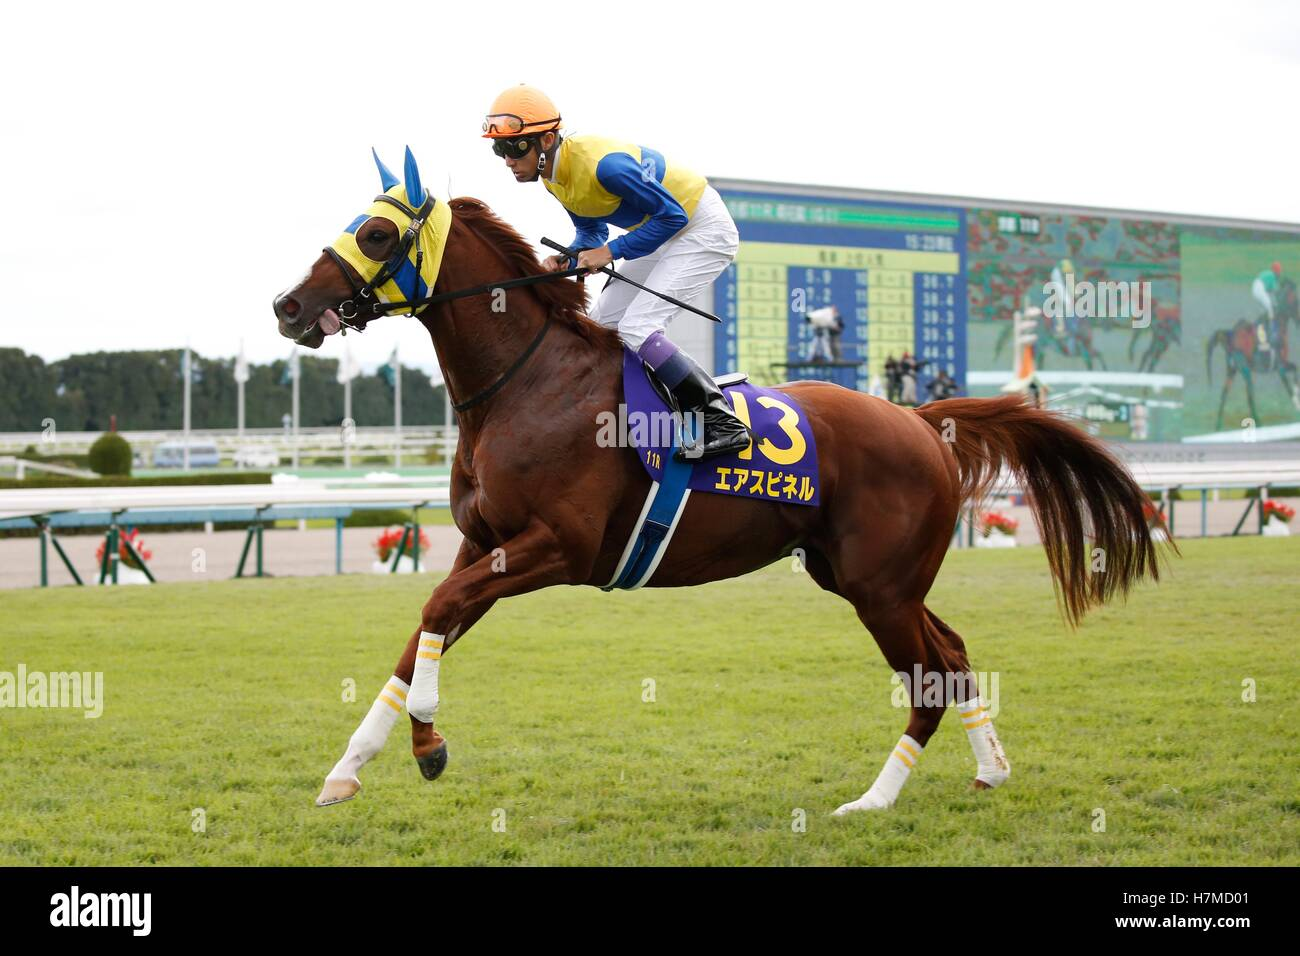 Kyoto, Japan. 23rd Oct, 2016. Air Spinel (Yutaka Take) Horse Racing : Air Spinel ridden by Yutaka Take before the Stock Photo